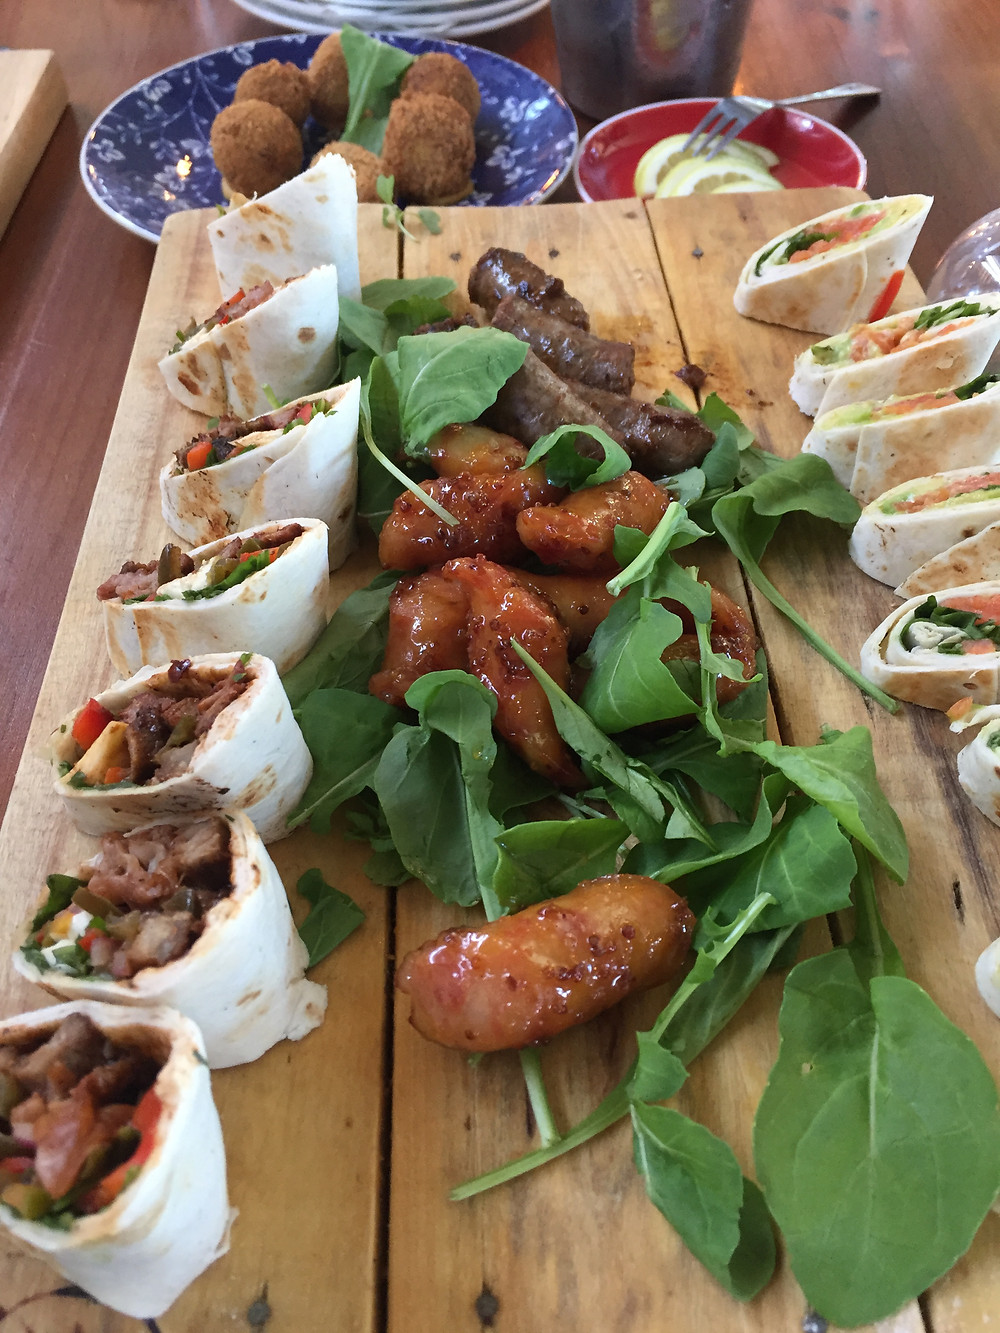 Platter of food on offer at Nuy on the hill. Nuy is a wine farm in south Africa